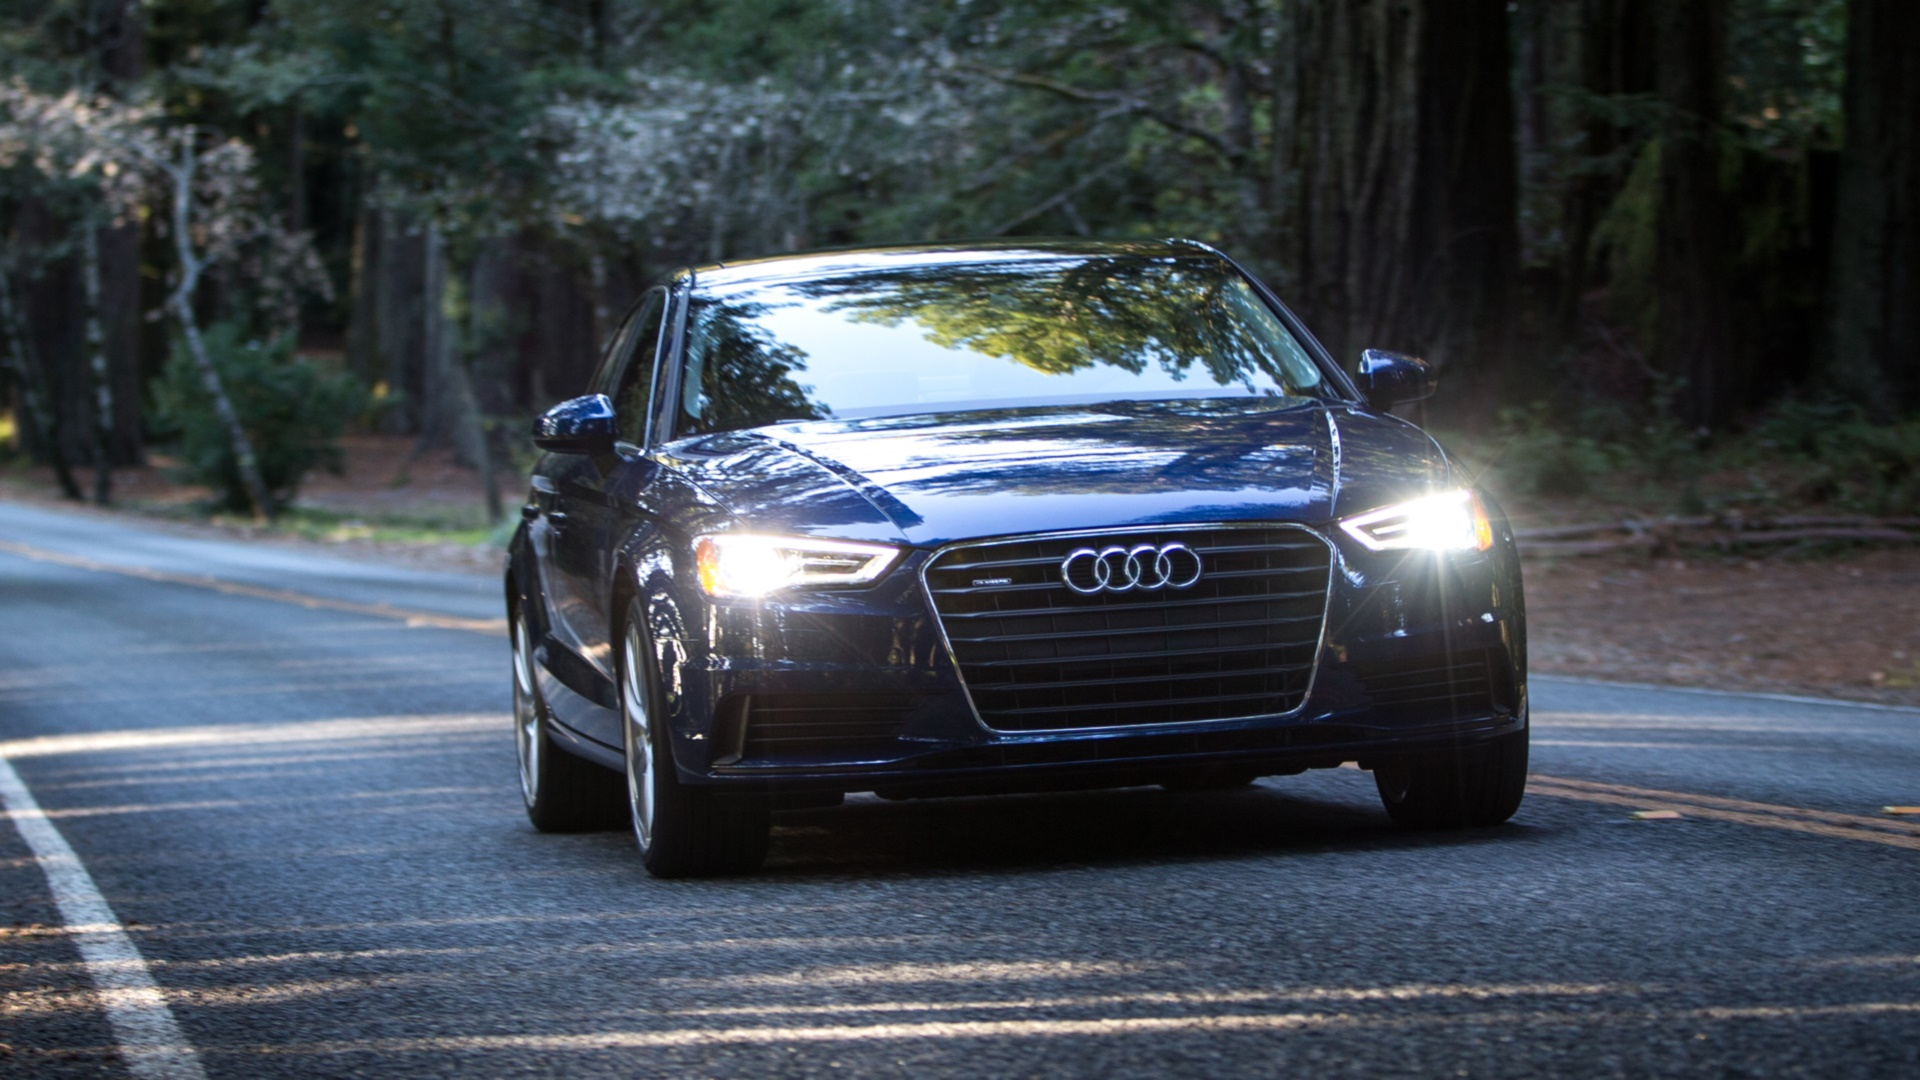 These Full Hd Wallpapers Audi Are Available To Download Now Of